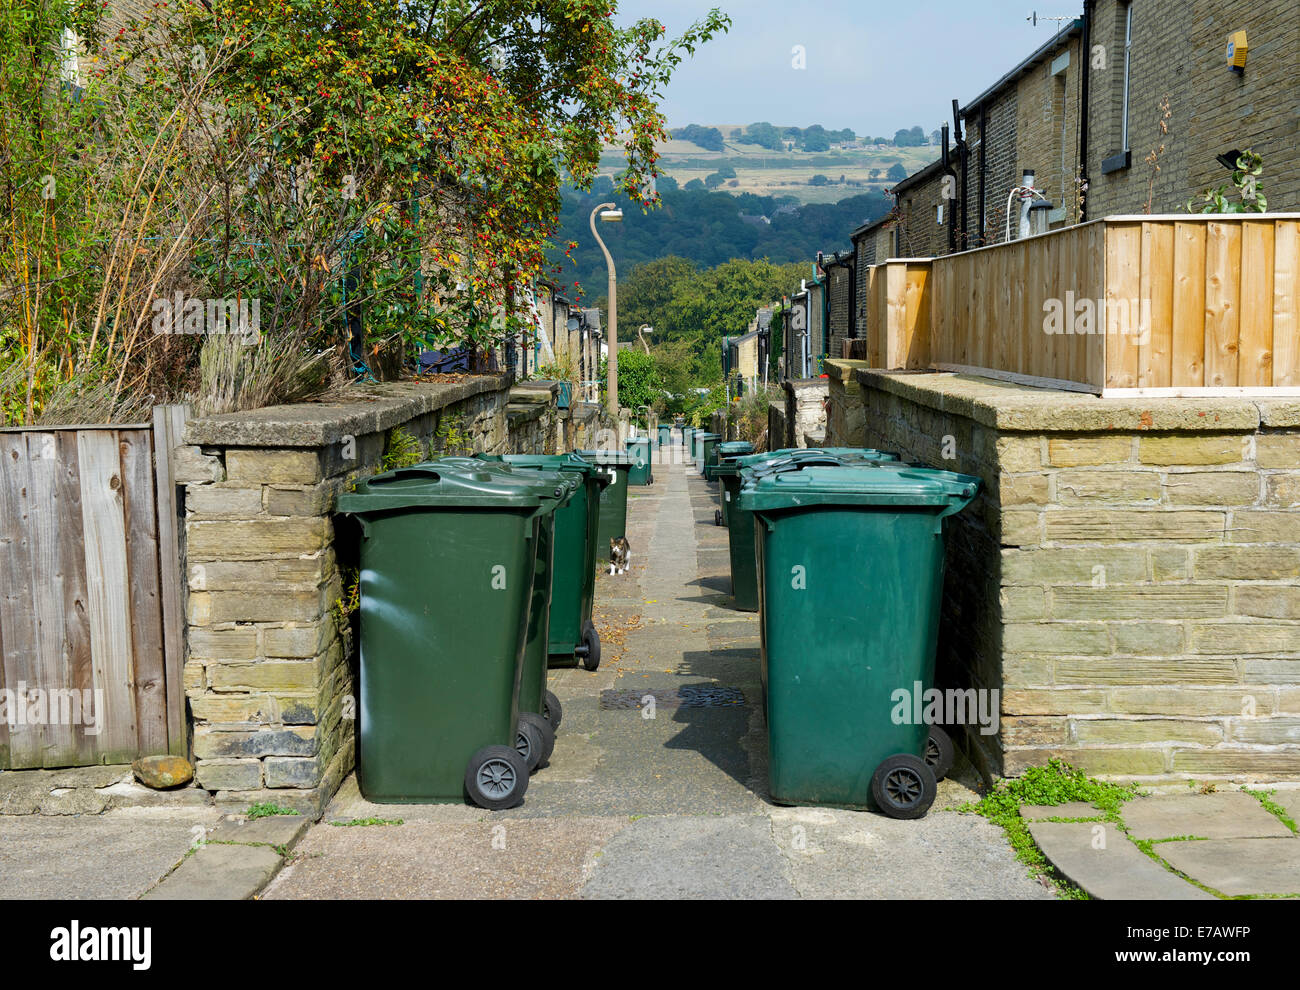 Rubbish bins in backstreet, Saltaire, West Yorkshire, England UK - Stock Image